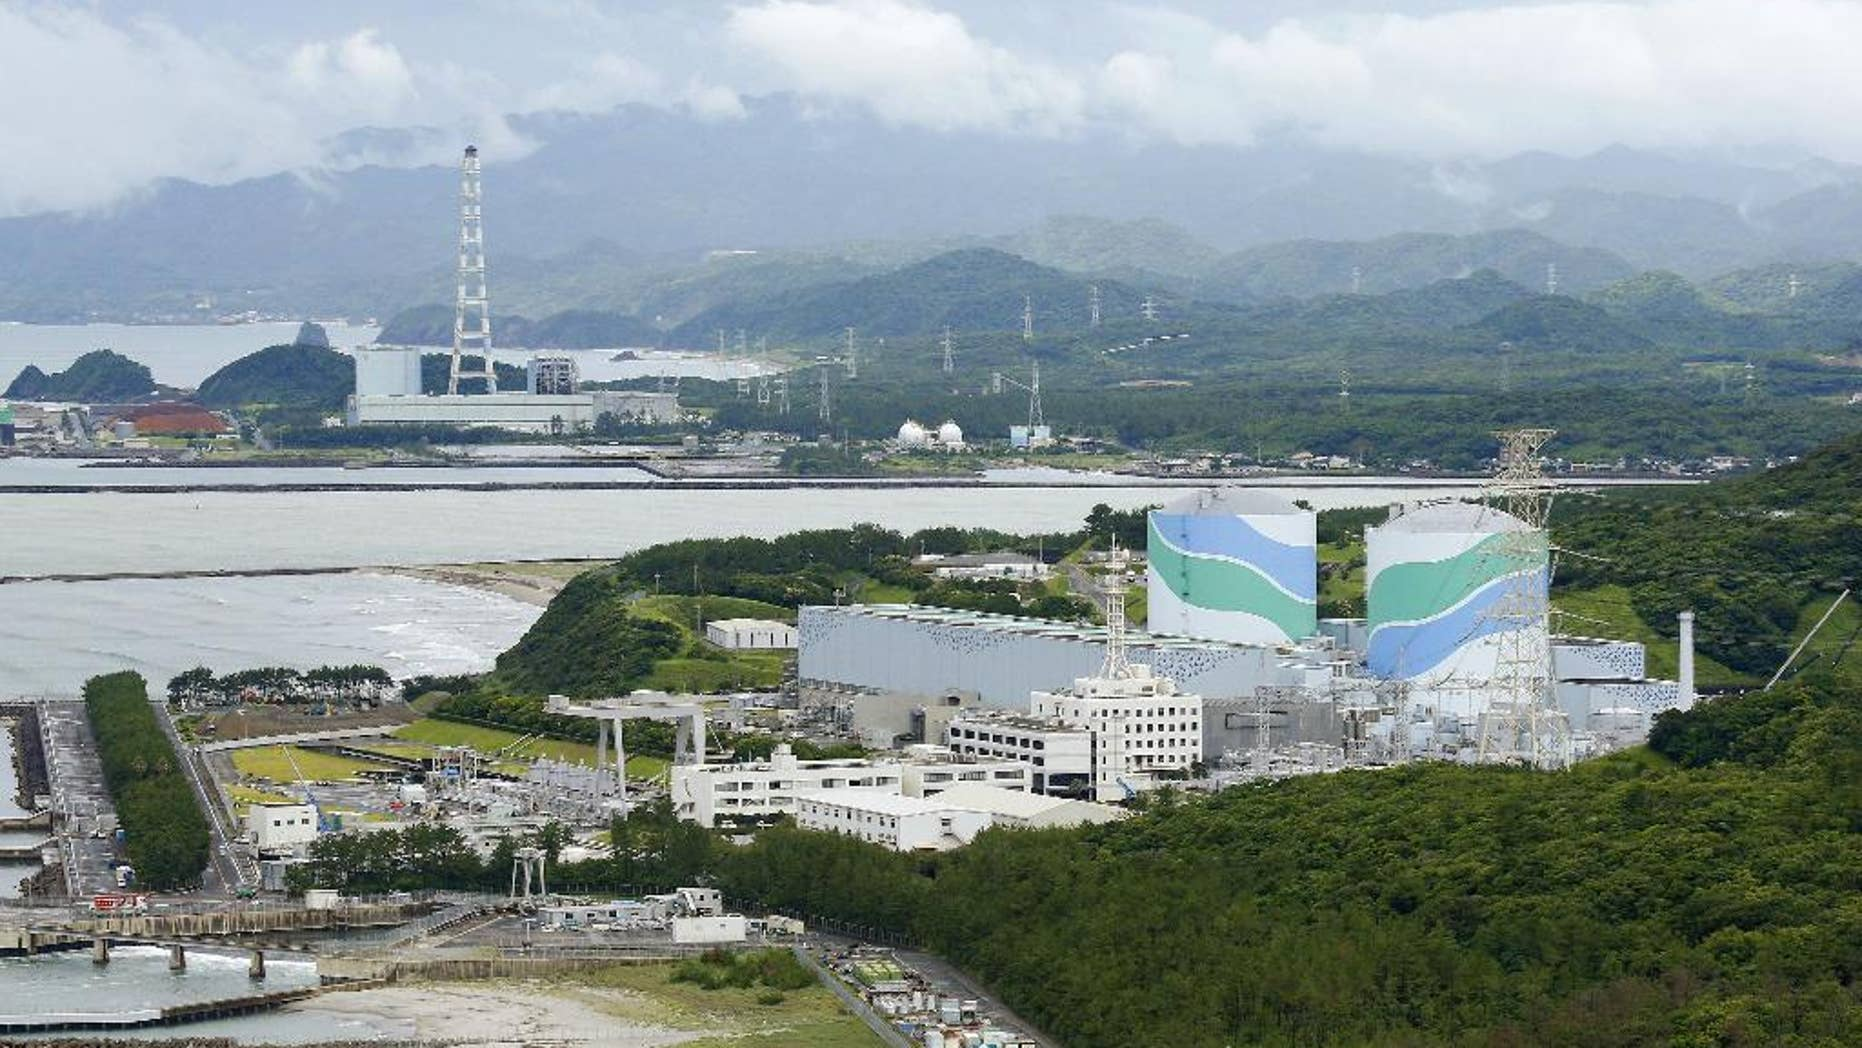 This June 2013 photo shows No. 1, right, and No. 2 at Sendai nuclear power station in Sendai, Kagoshima prefecture, southwestern Japan. A prominent volcanologist disputed Japanese regulators' conclusion that two nuclear reactors were safe from a volcanic eruption in the next few decades, saying Friday, Oct. 17, 2014 that such a prediction was impossible. A cauldron eruption at one of several volcanos surrounding the Sendai nuclear power plant could not only hit the reactors but could cause a nationwide disaster, said Toshitsugu Fujii, head of a government-commissioned panel on volcanic eruption prediction. (AP Photo/Kyodo News) JAPAN OUT, CREDIT MANDATORY